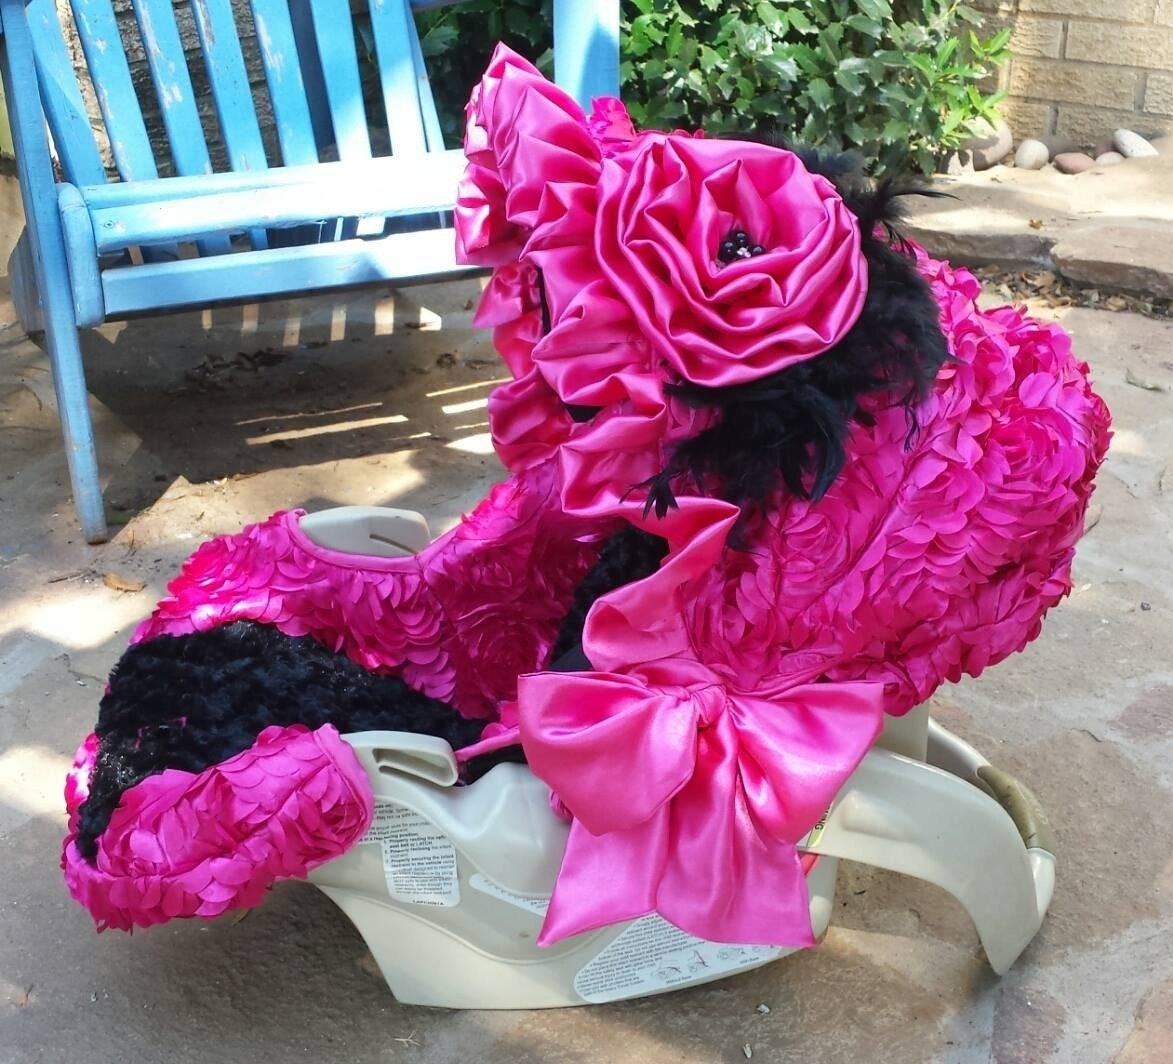 3d Rosette Flowers Fuschia Hot Pink And Black Reupholstered Car Seat